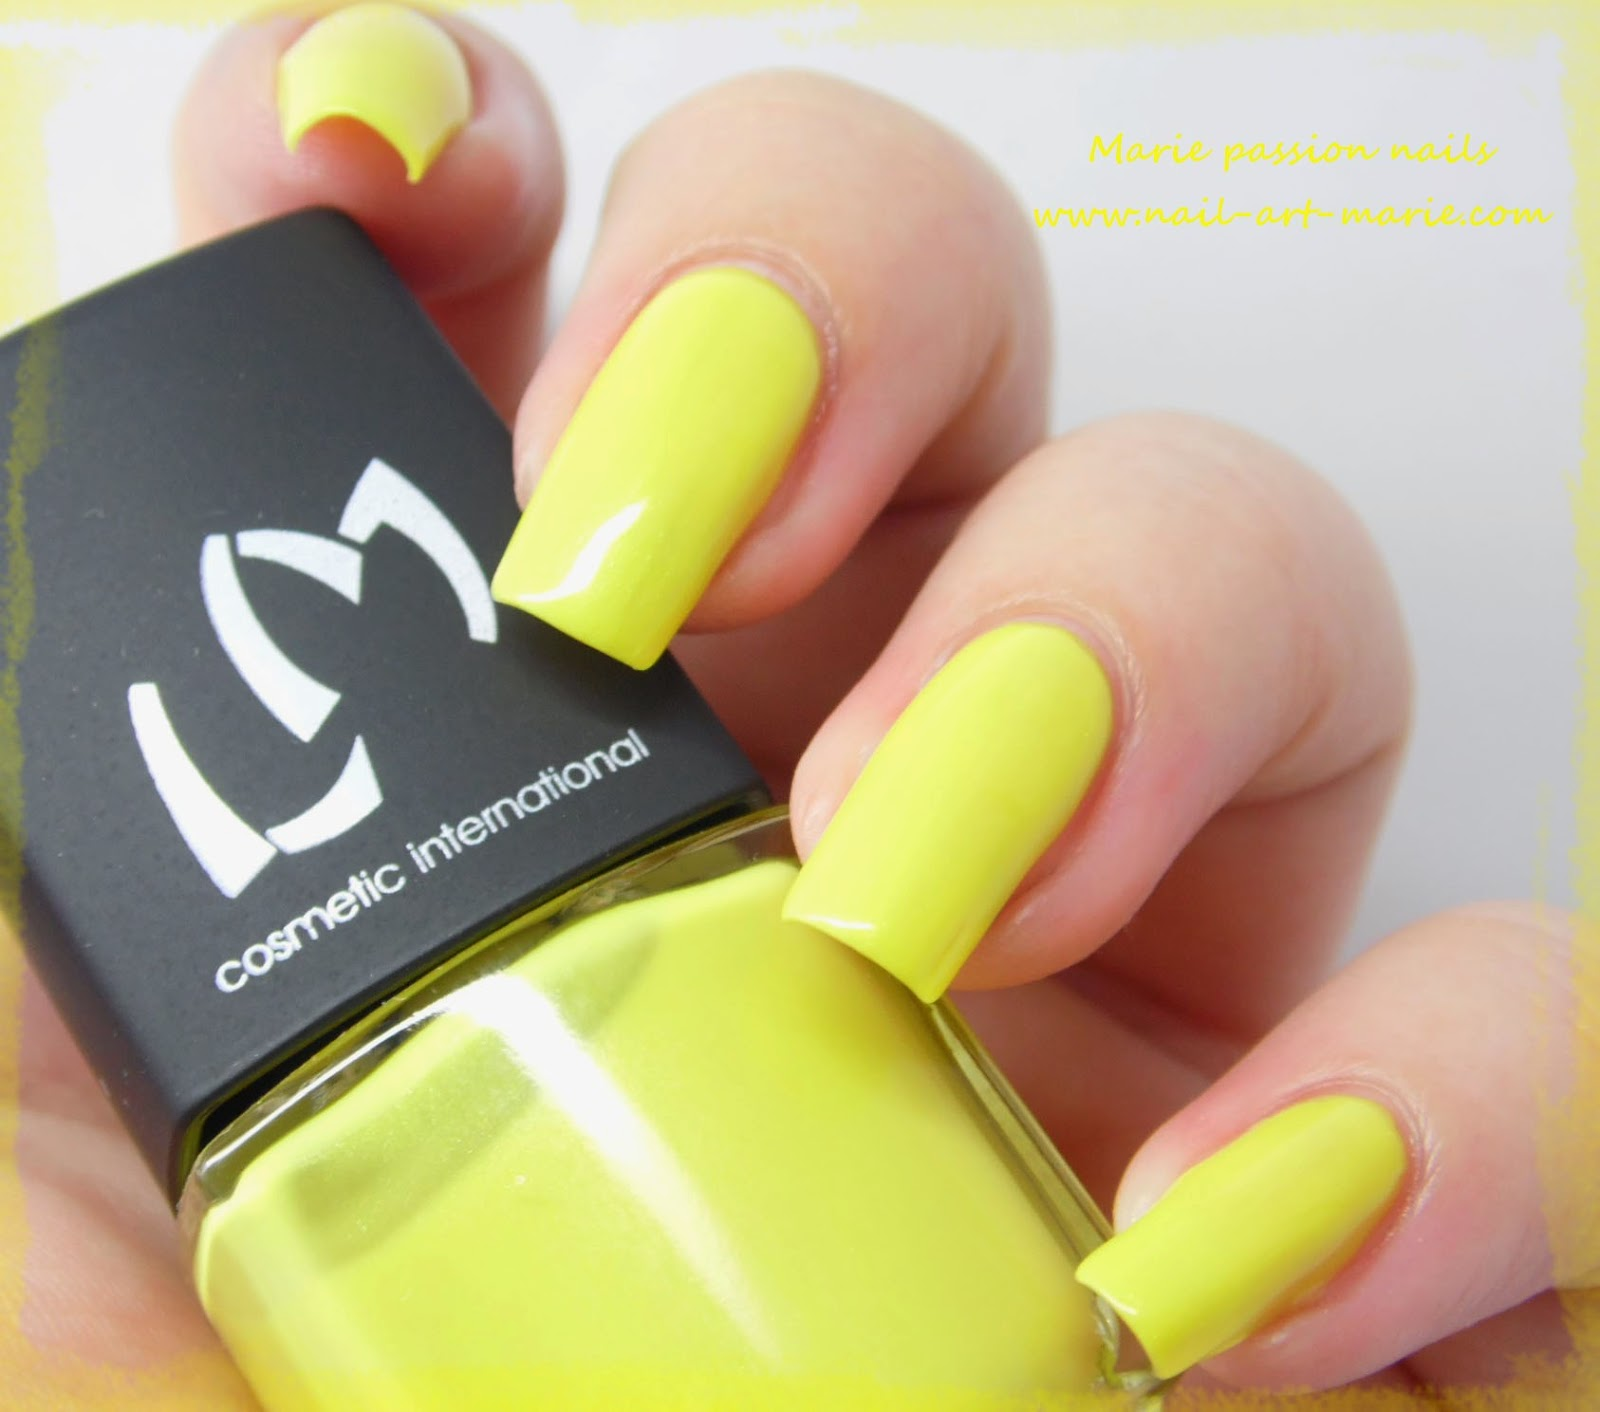 LM Cosmetic Castelao8